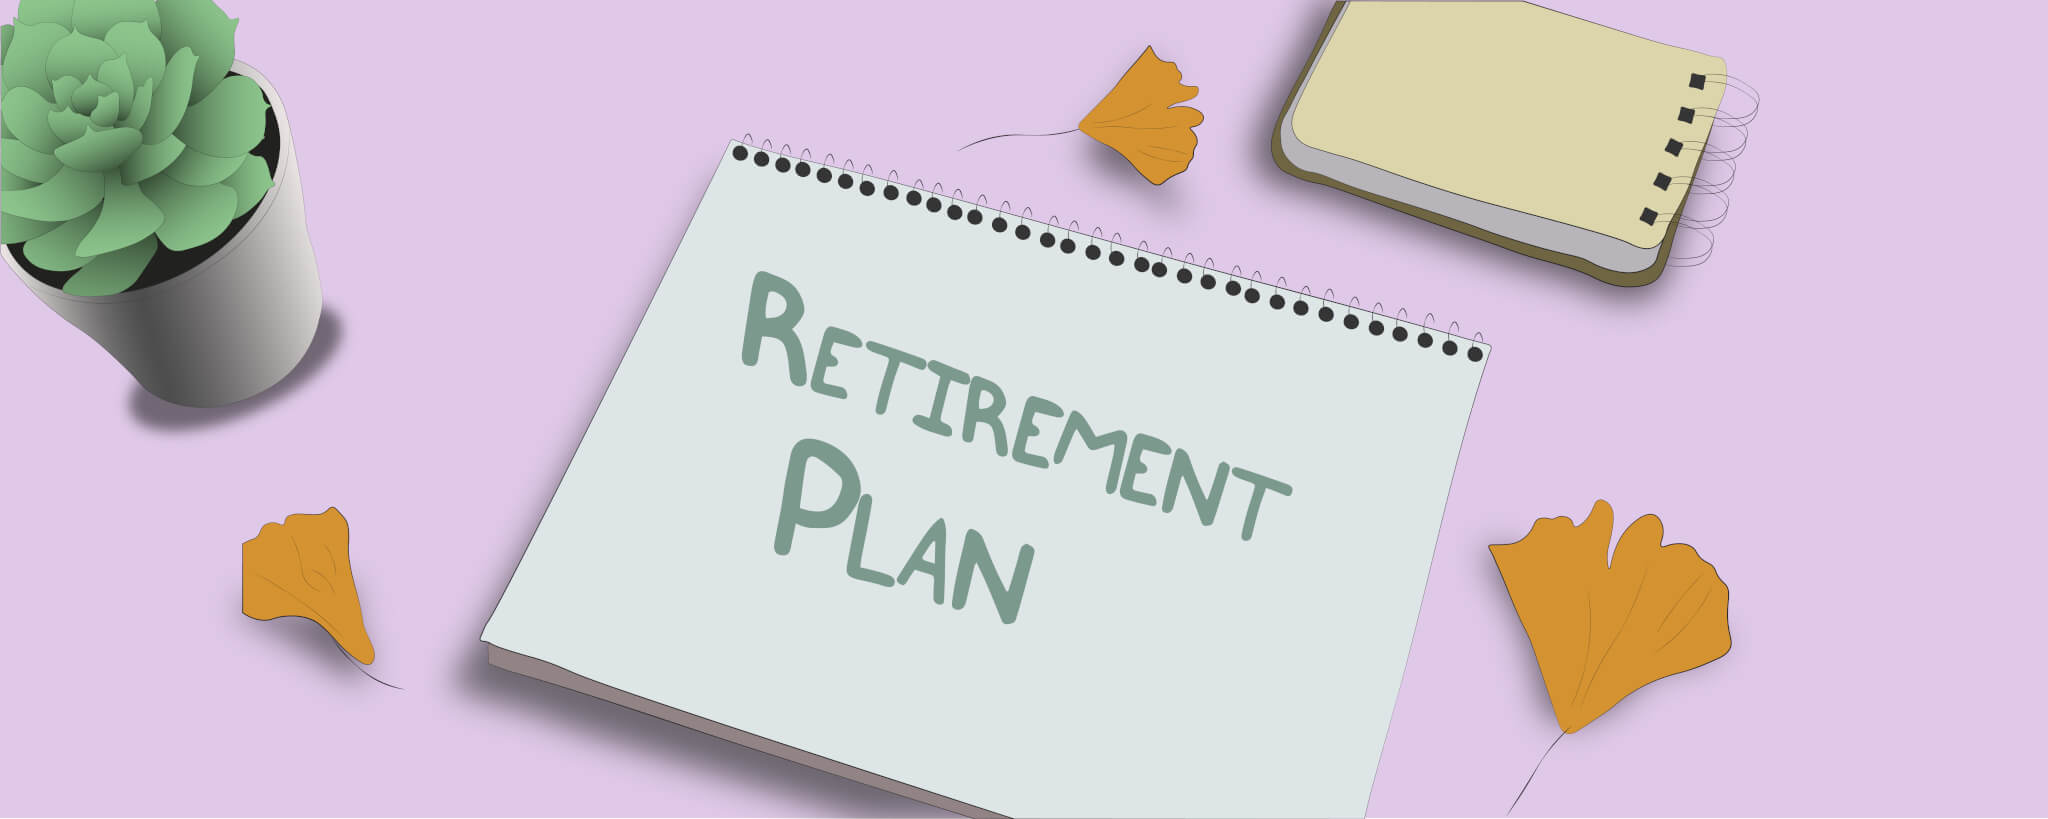 How to compound save for retirement. Free retirement plan download